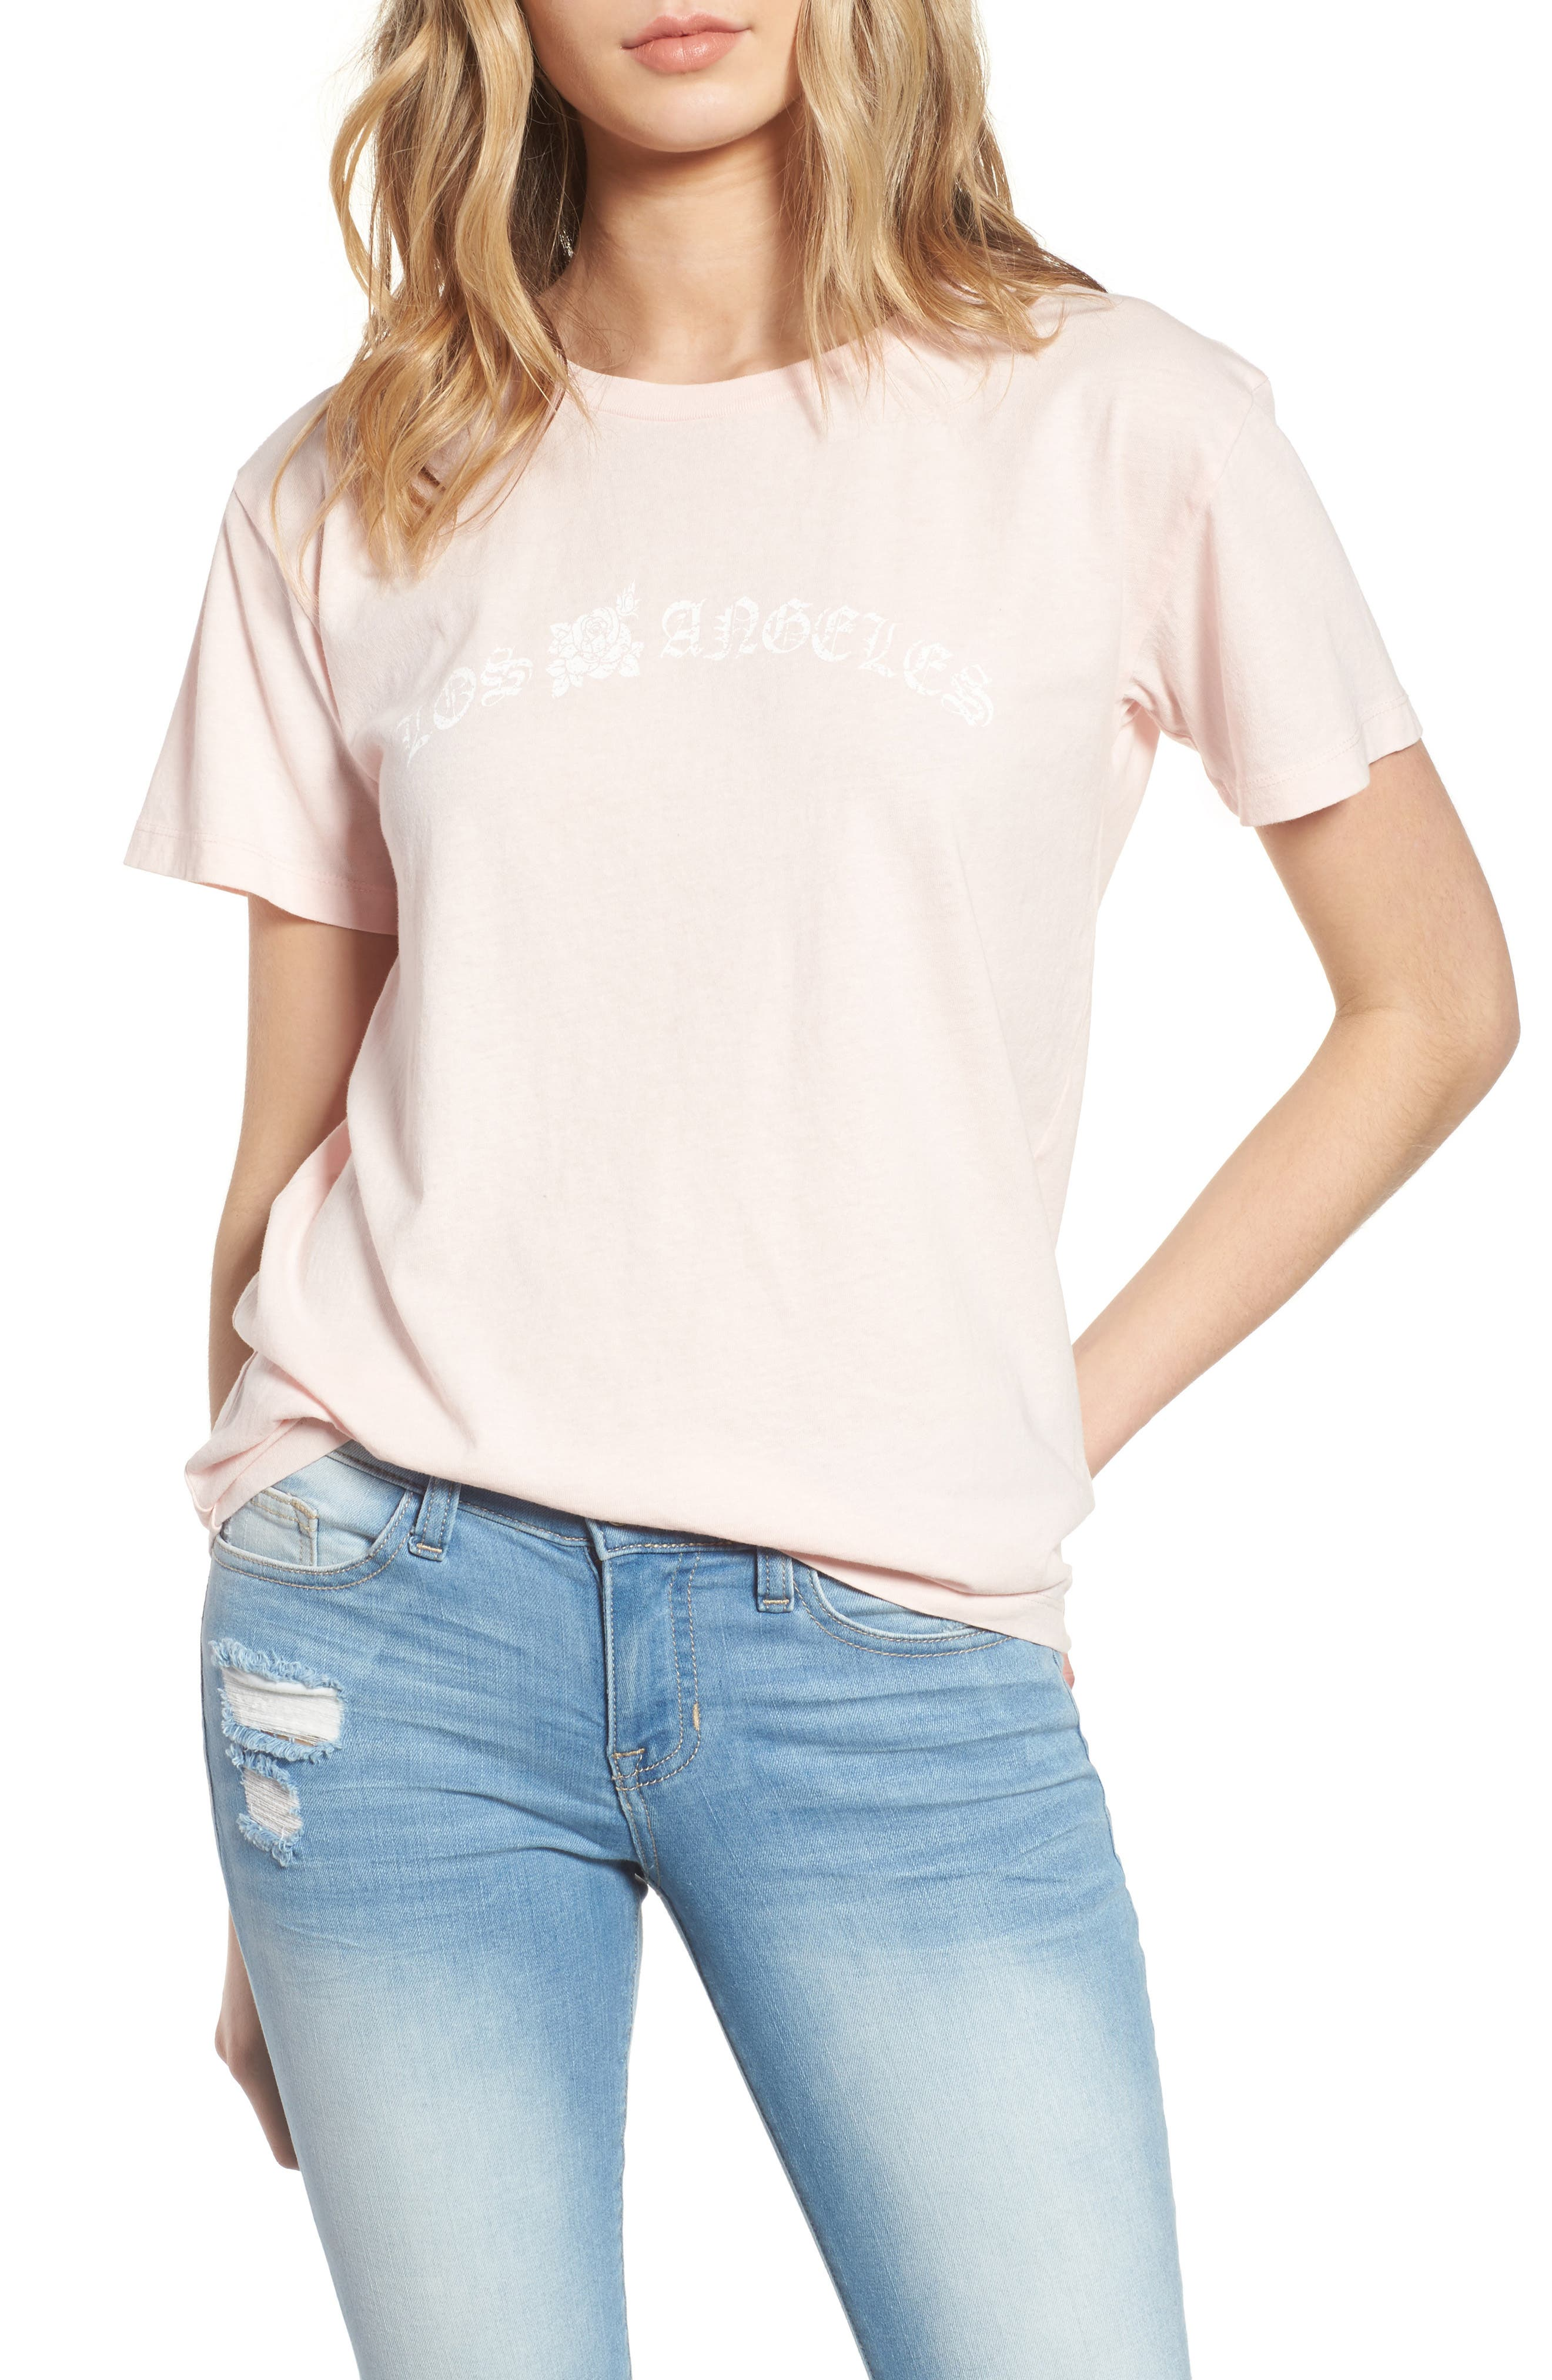 Los Angeles Cotton Boyfriend Tee,                         Main,                         color, Washed Pale Pink